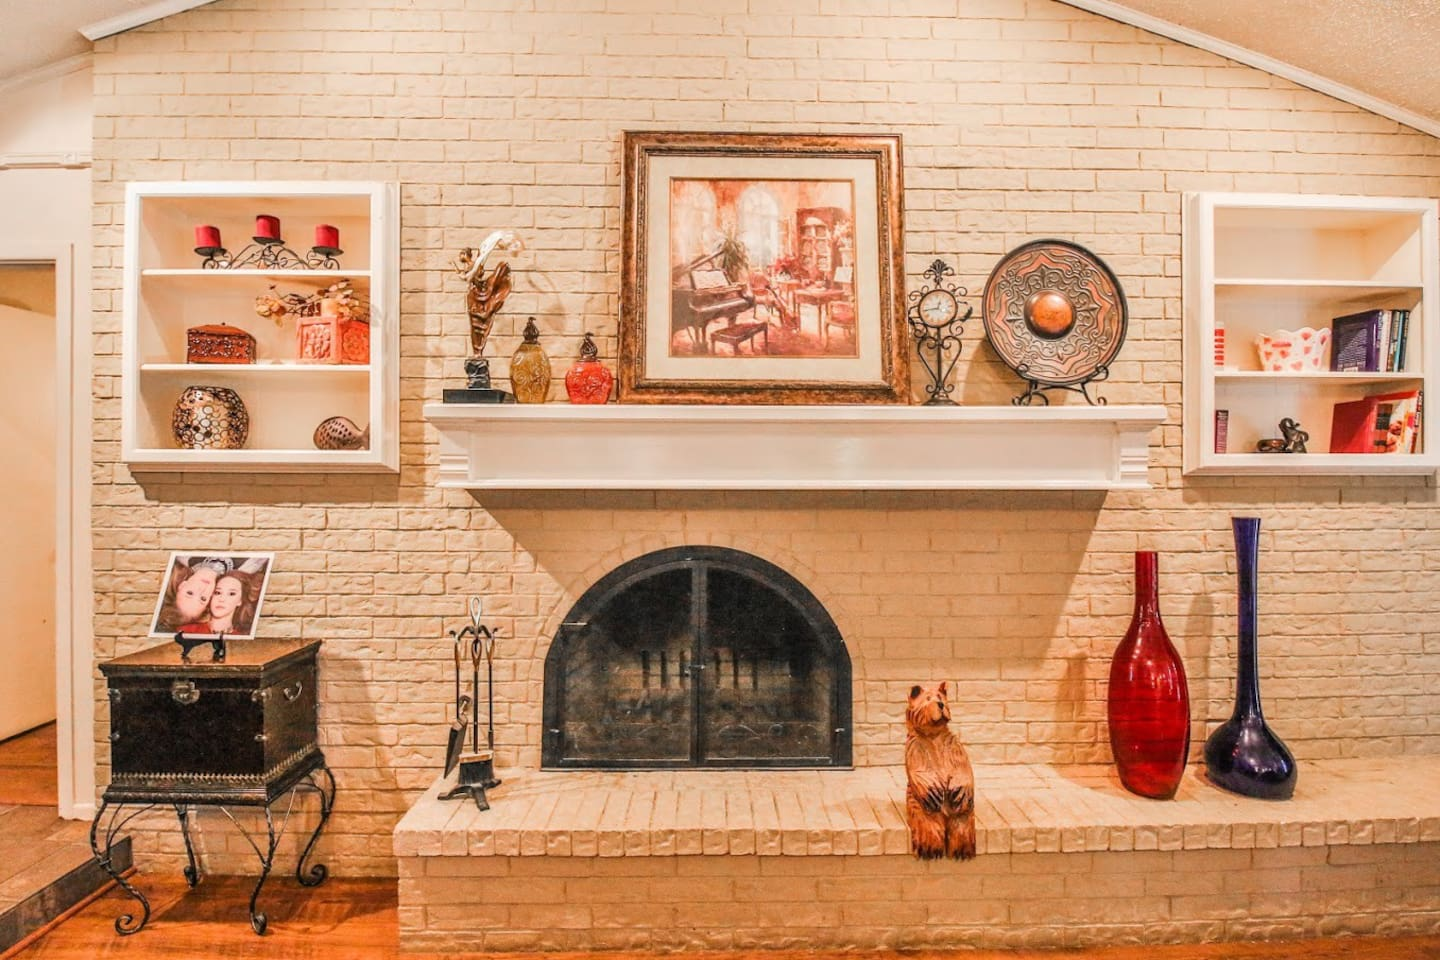 west texas retreat houses for rent in lubbock texas united states